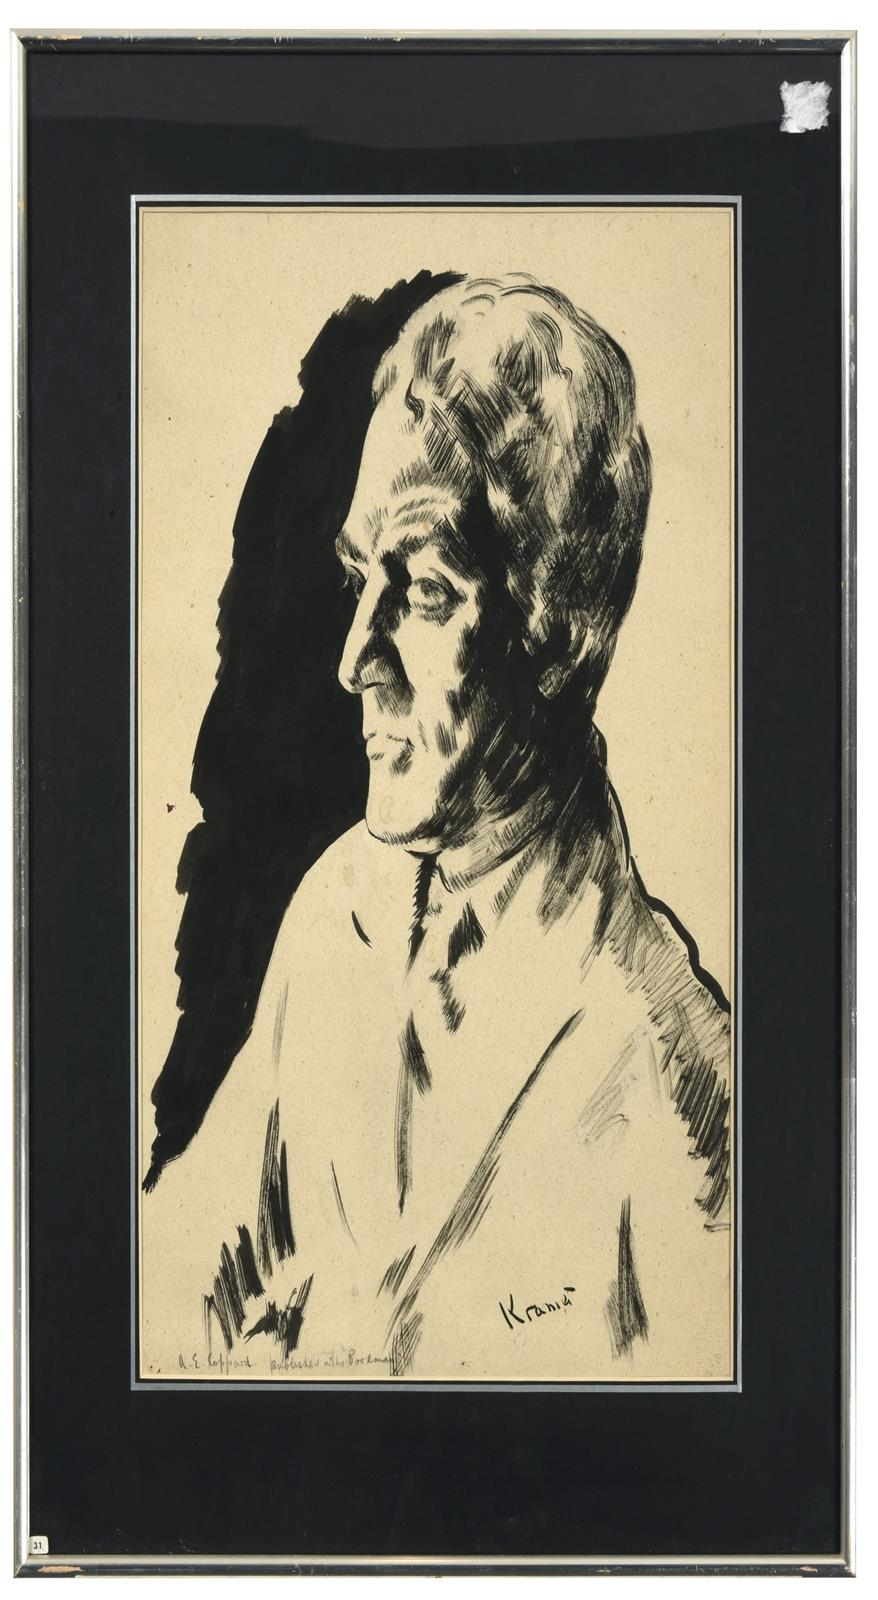 Jacob Kramer (1892-1962) ''A.E. Coppard'', Head and shoulders portrait Signed, inscribed with name - Image 2 of 3